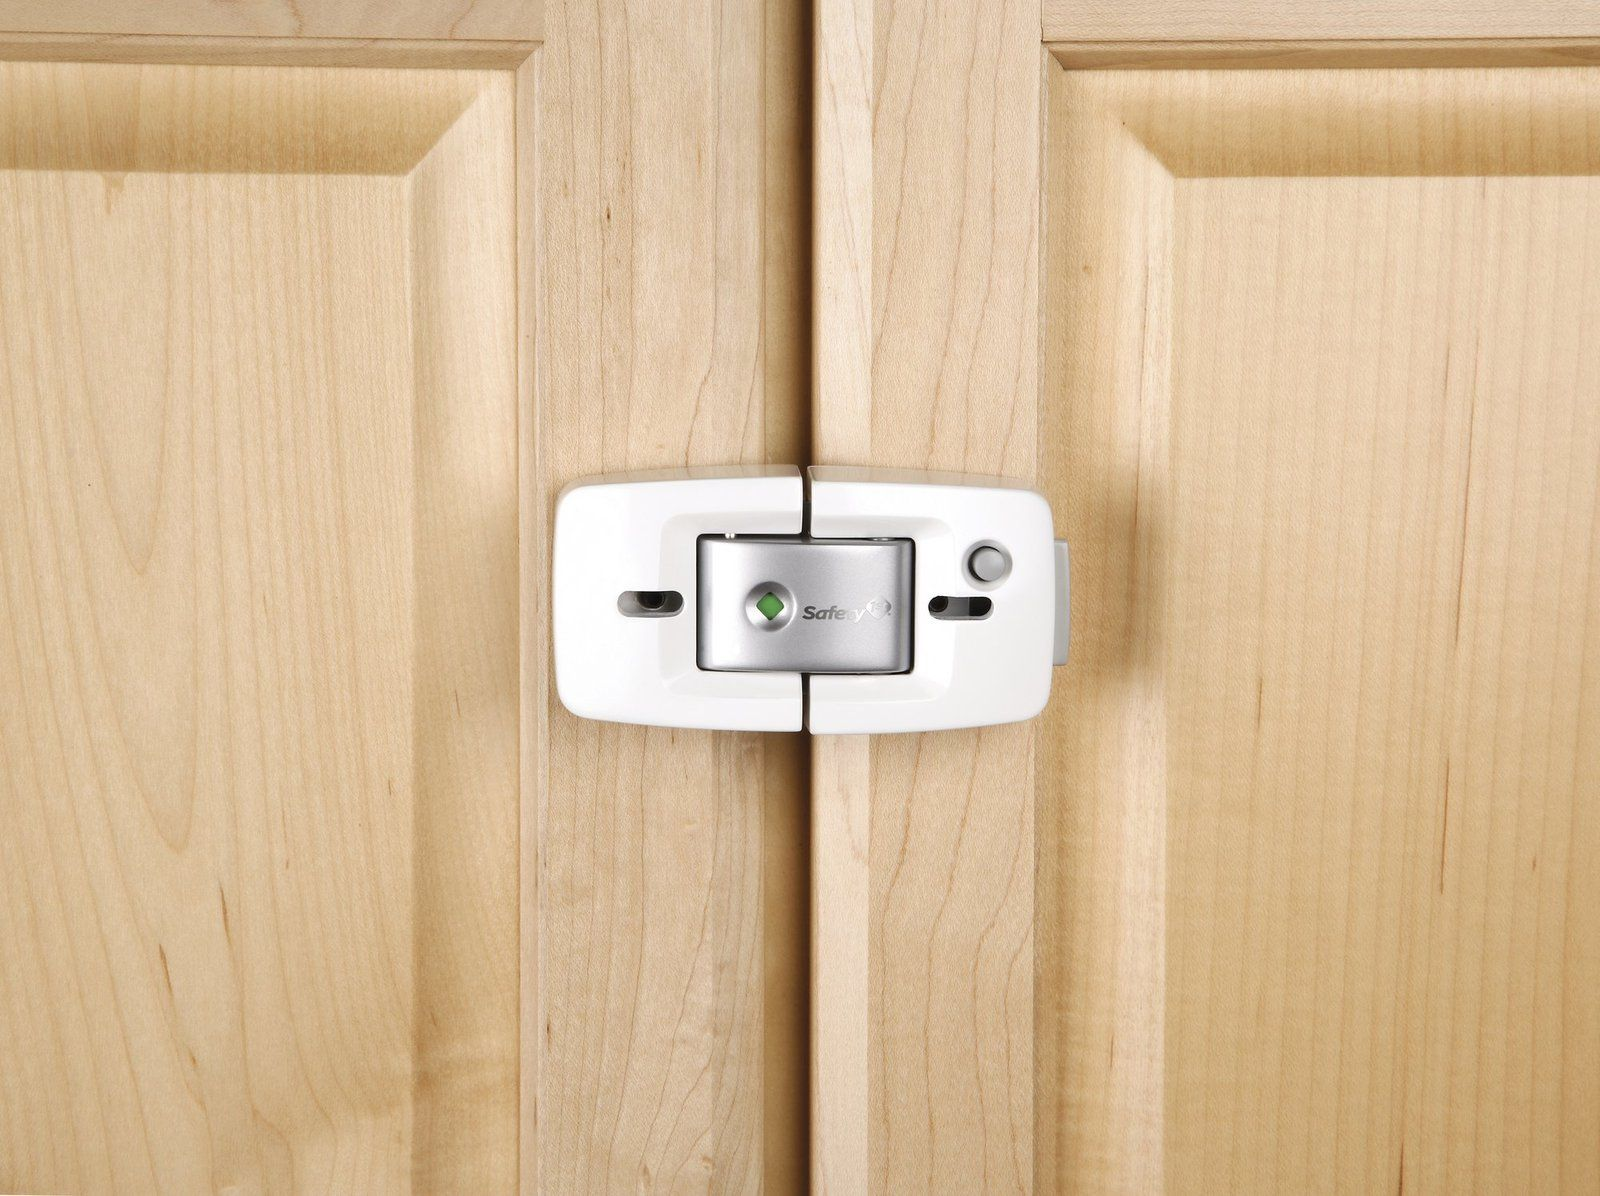 Bedroom Door Emergency Key Safety 1st Prograde Cabinet Lock Best Price Babyproof